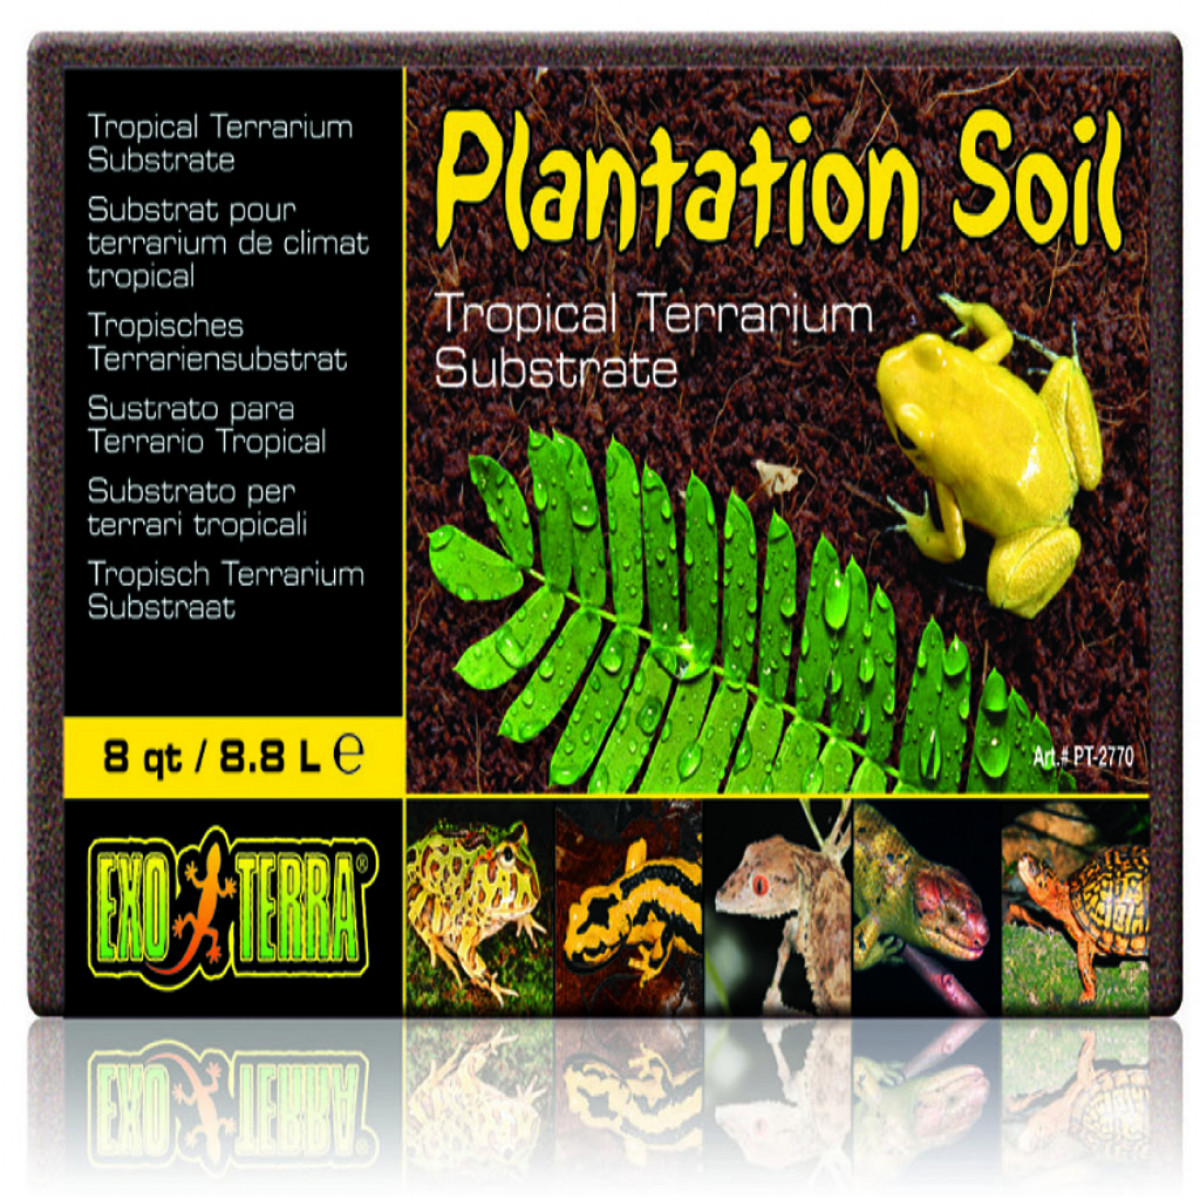 Exo Terra Plantation Soil (Expands to 8.8 litres)